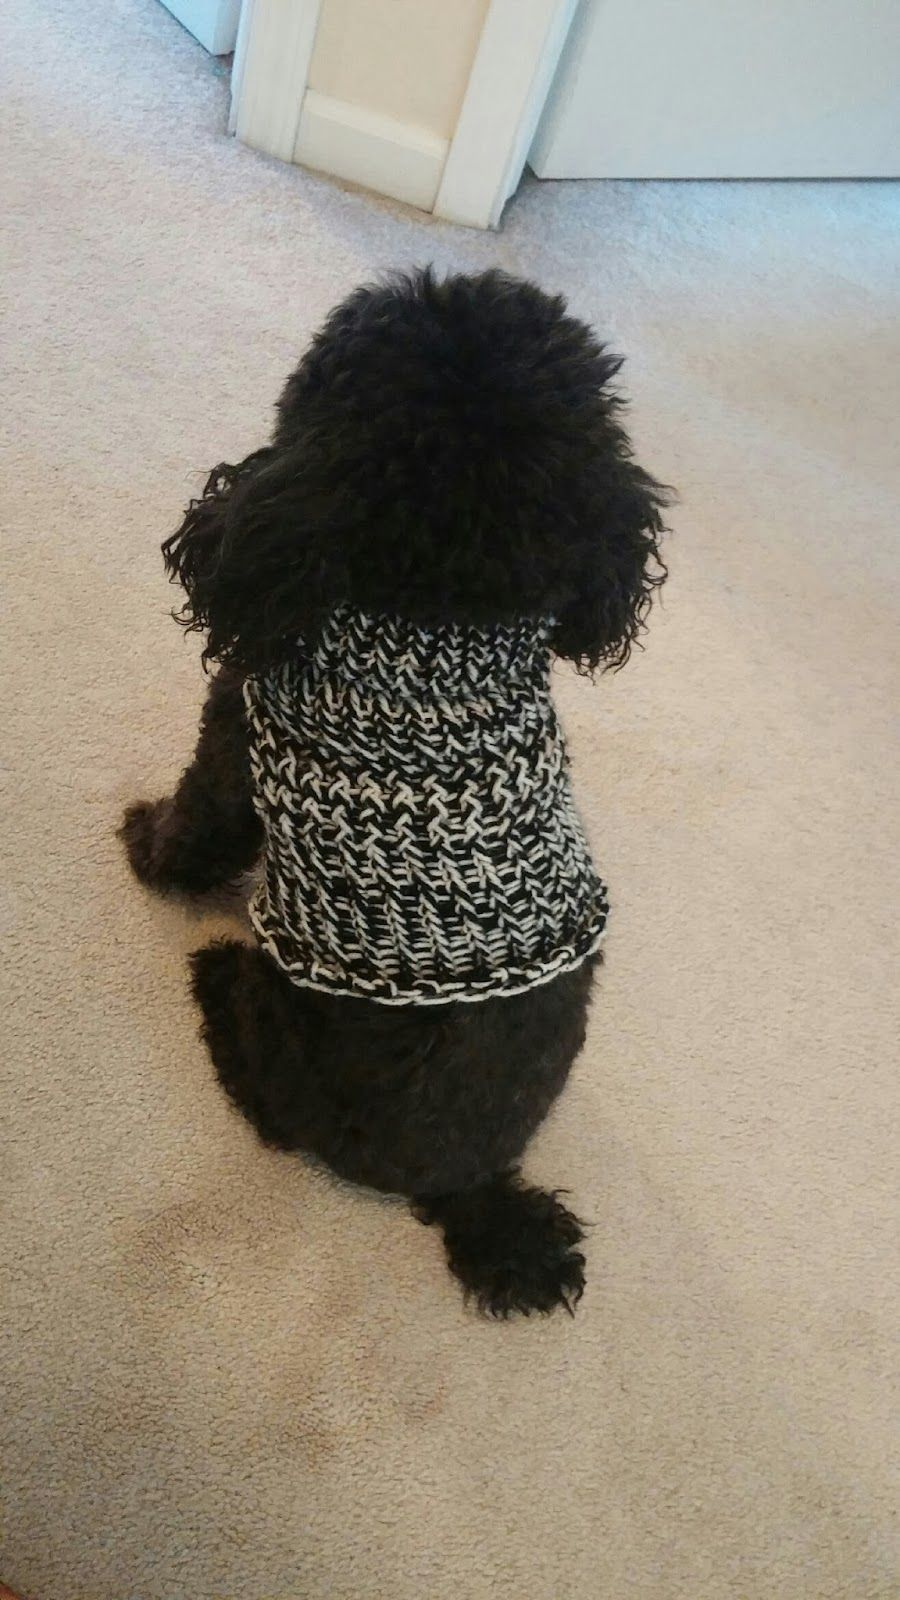 Corky Crafts & Knit Hats: Loom Knitting a Dog Sweater | mine ...